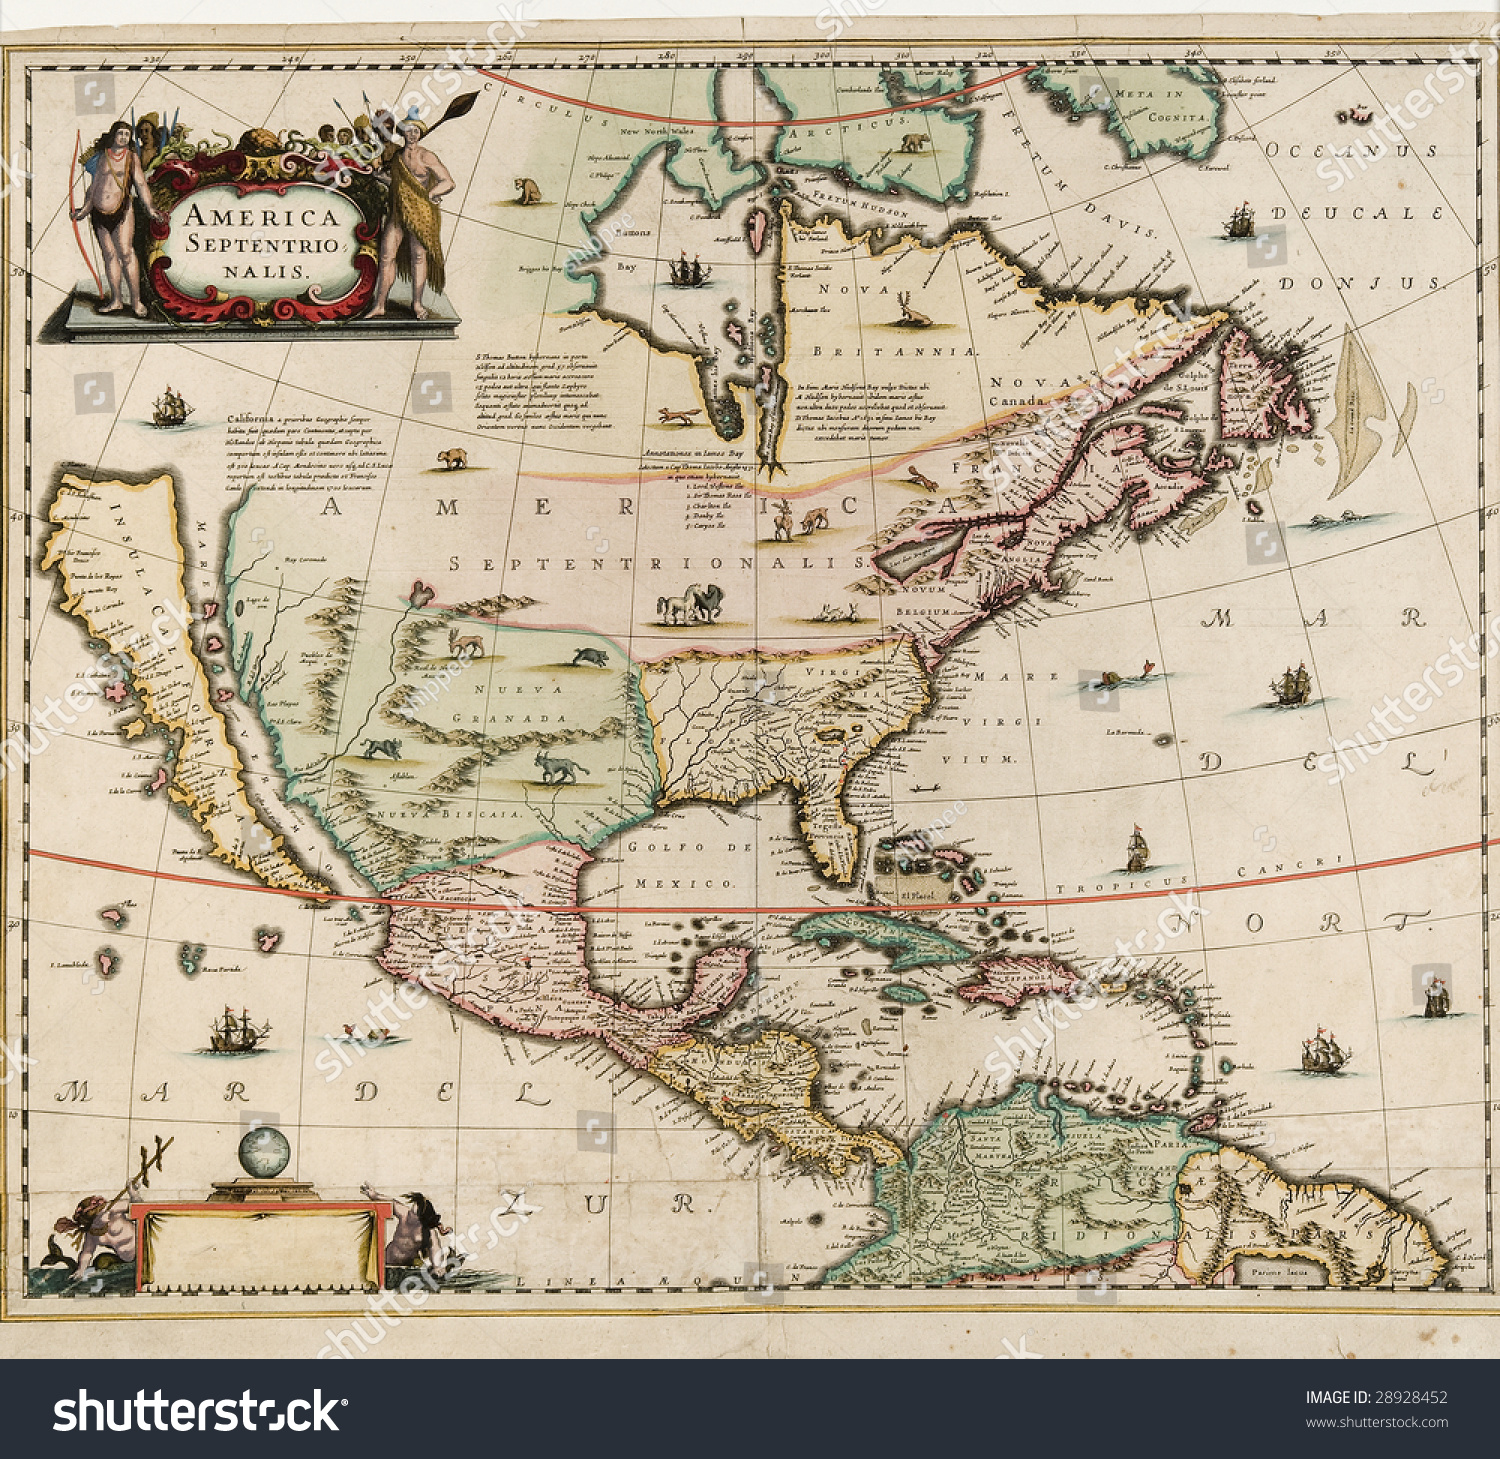 Old world map america septentrio nalis stock photo edit now old world map america septentrio nalis probably dates around early 1600s showing north america gumiabroncs Images